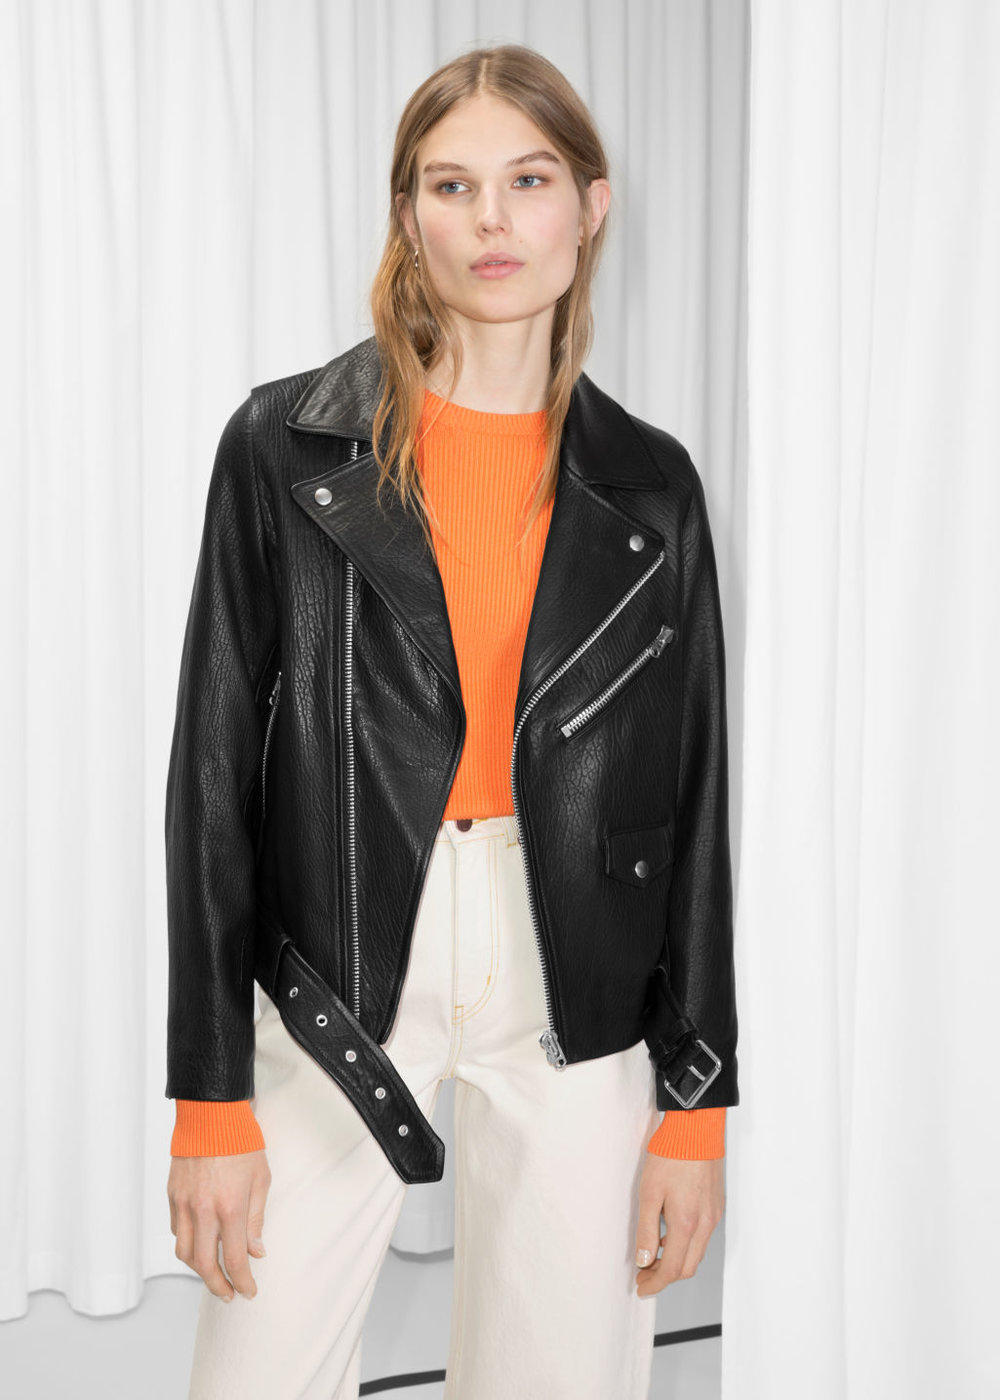 & Other Stories Leather Biker Jacket, £345 - We end with the classic Biker; a traditional silhouette crafted in lamb leather by one of our favourite labels, & Other Stories. The beauty of this grainy piece lies in its simplicity, as it can be worn over absolutely anything…or with nothing underneath.